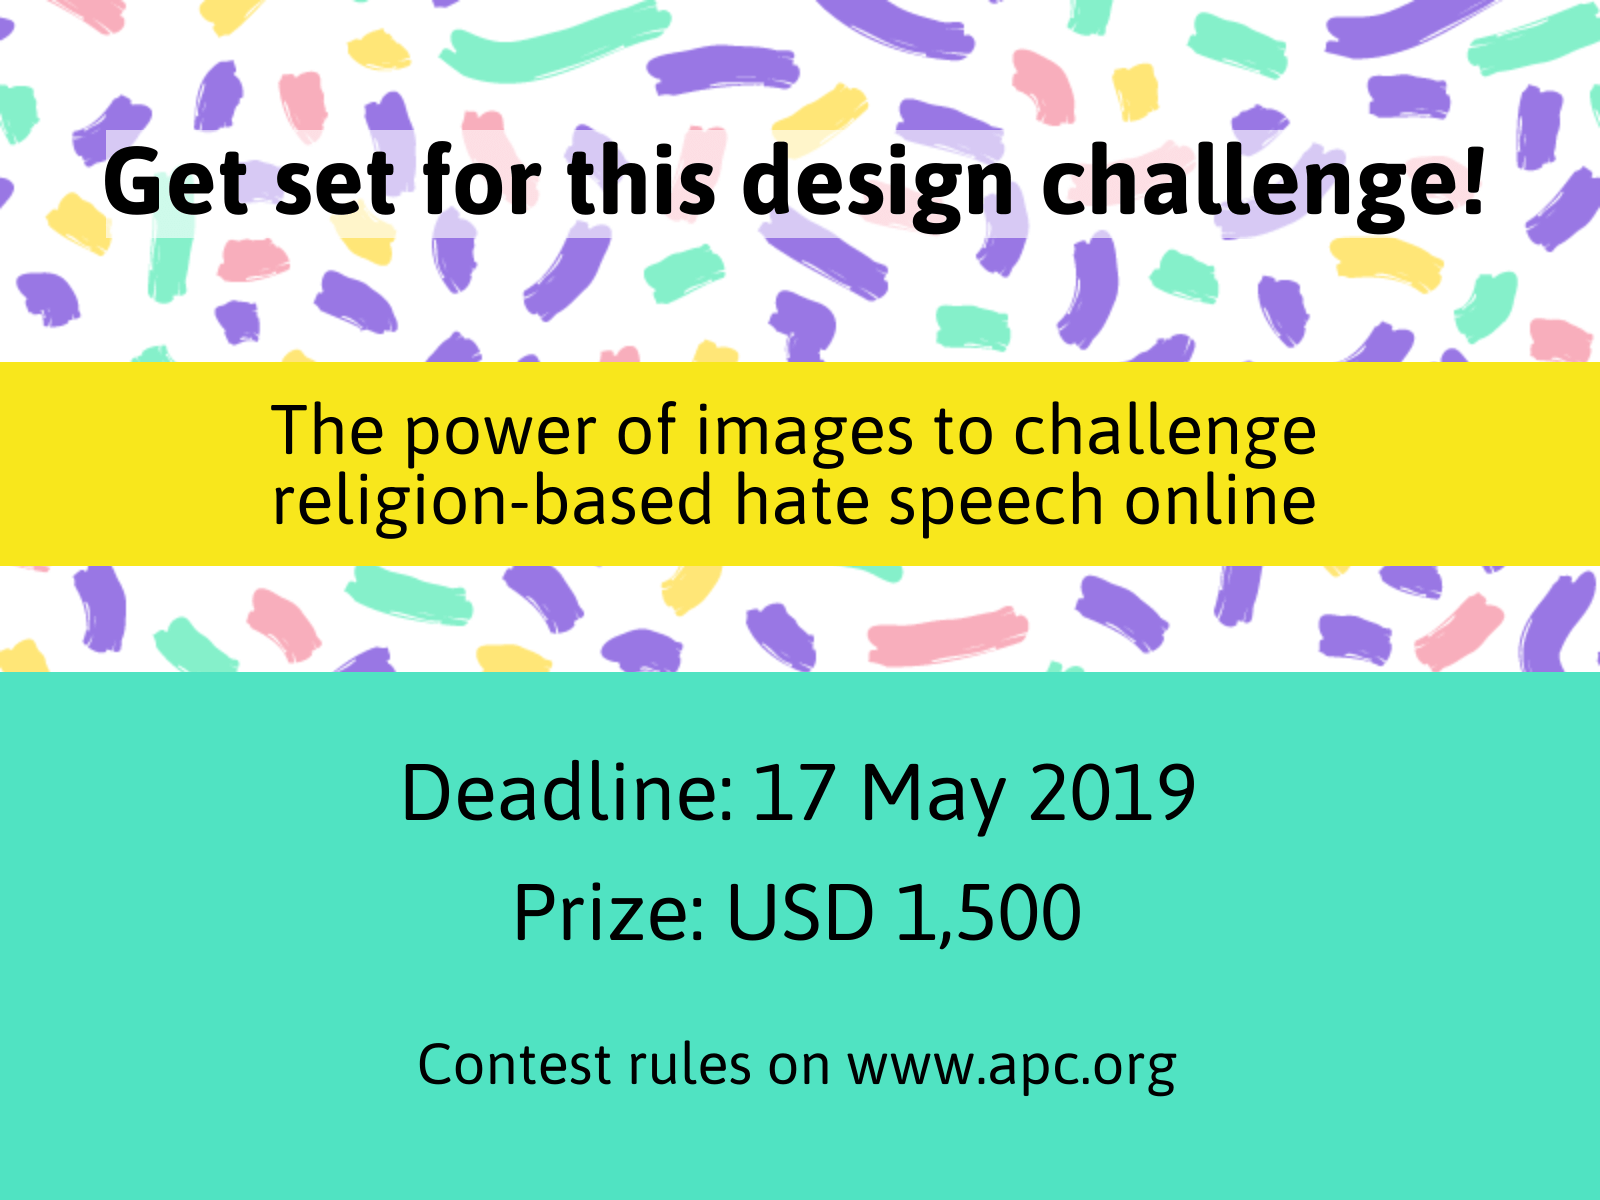 https://www.apc.org/en/news/challengecontest